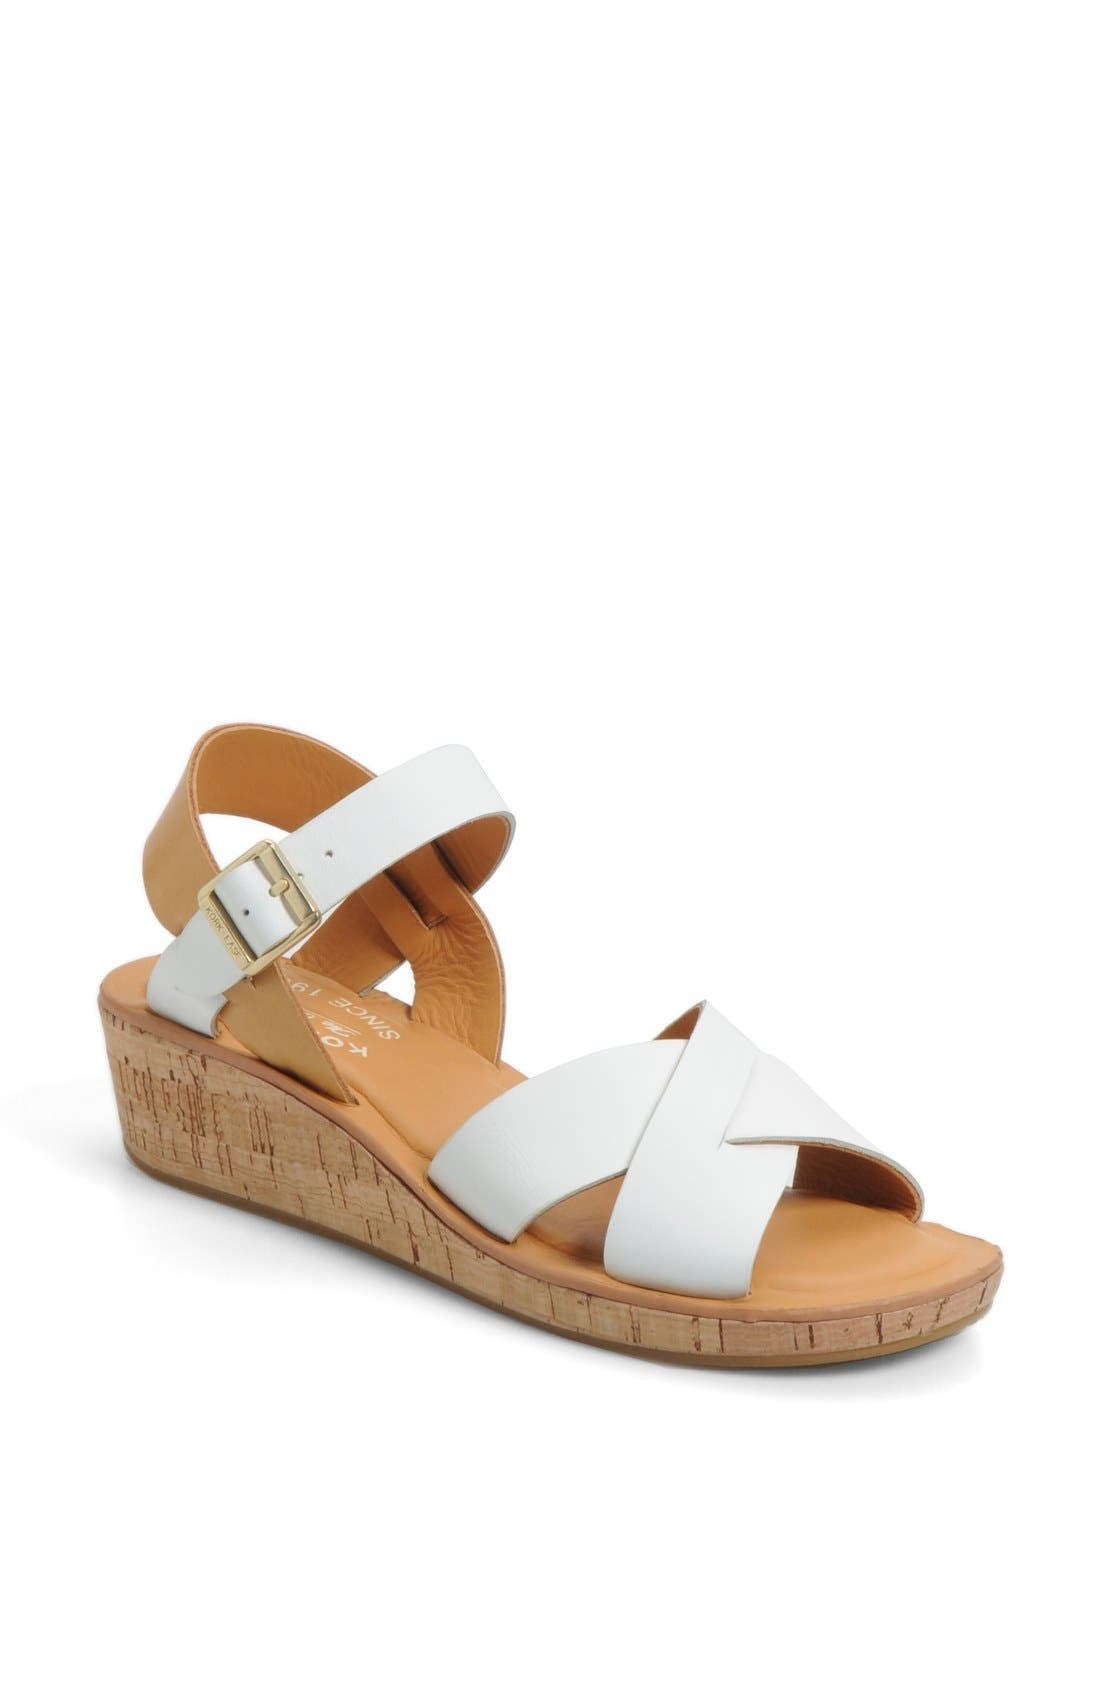 Alternate Image 1 Selected - Kork-Ease 'Myrna' Sandal